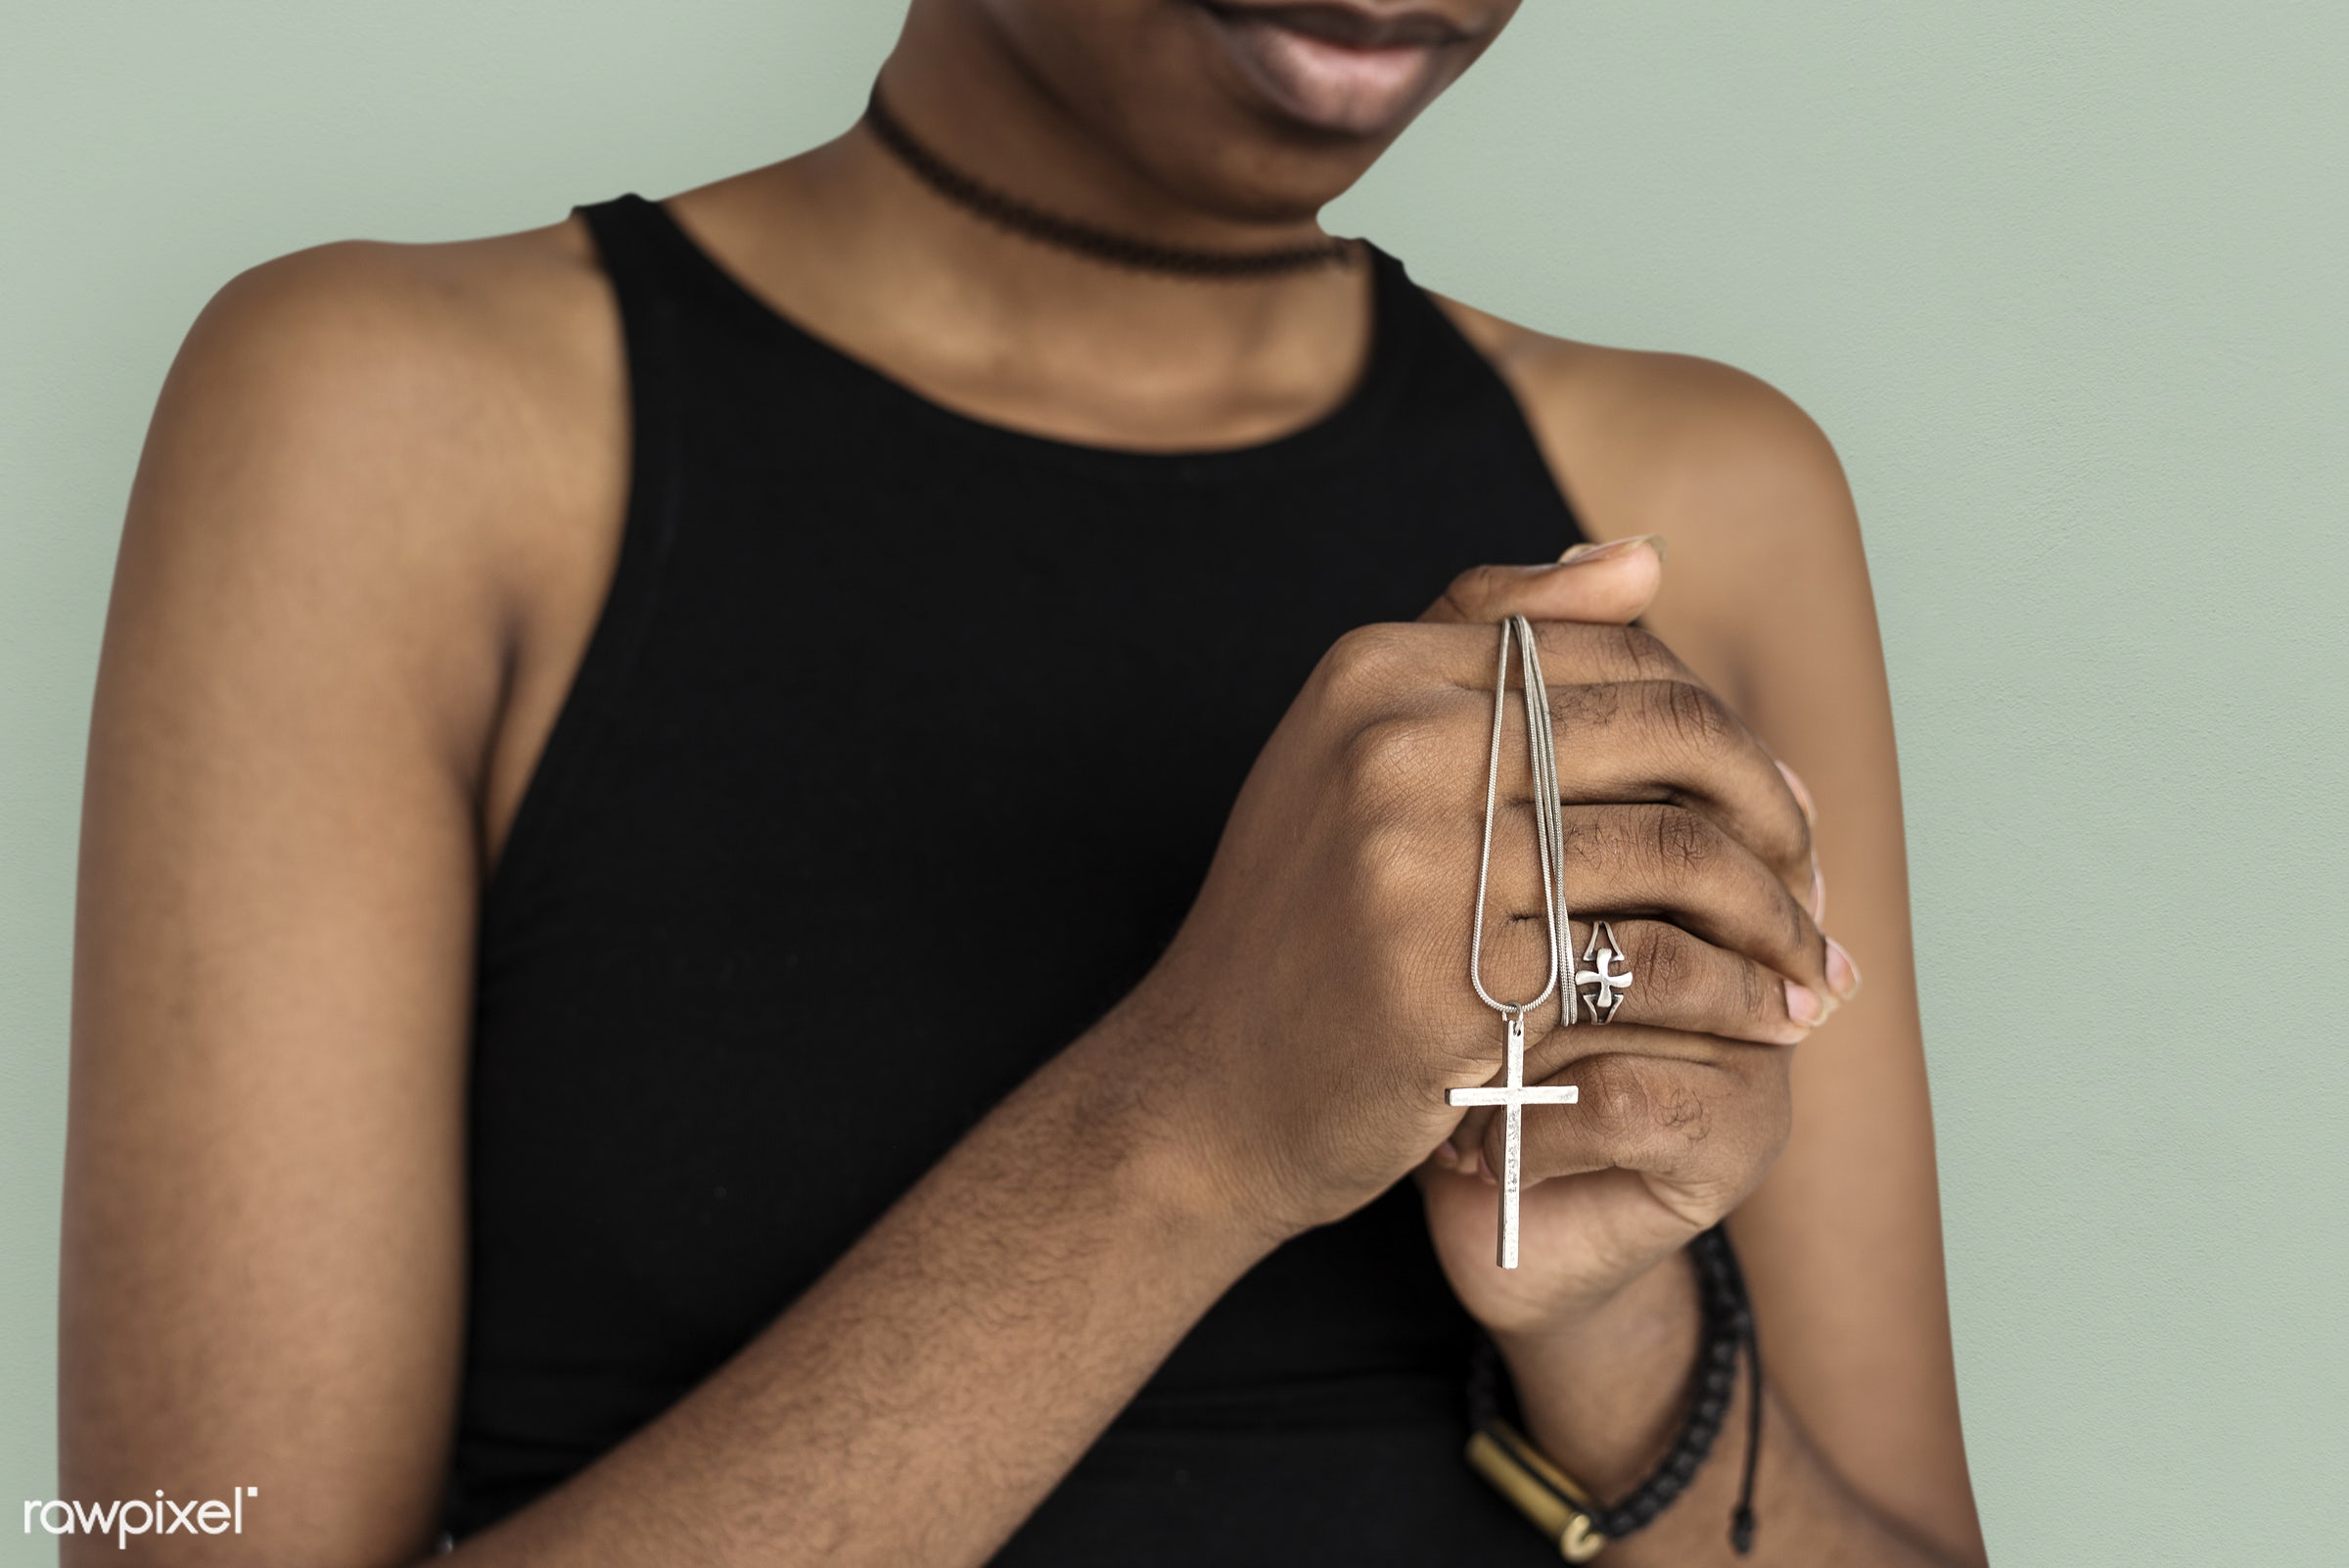 studio, pastel, person, model, believe, race, people, style, solo, woman, lifestyle, casual, beige, pray, feminism, isolated...